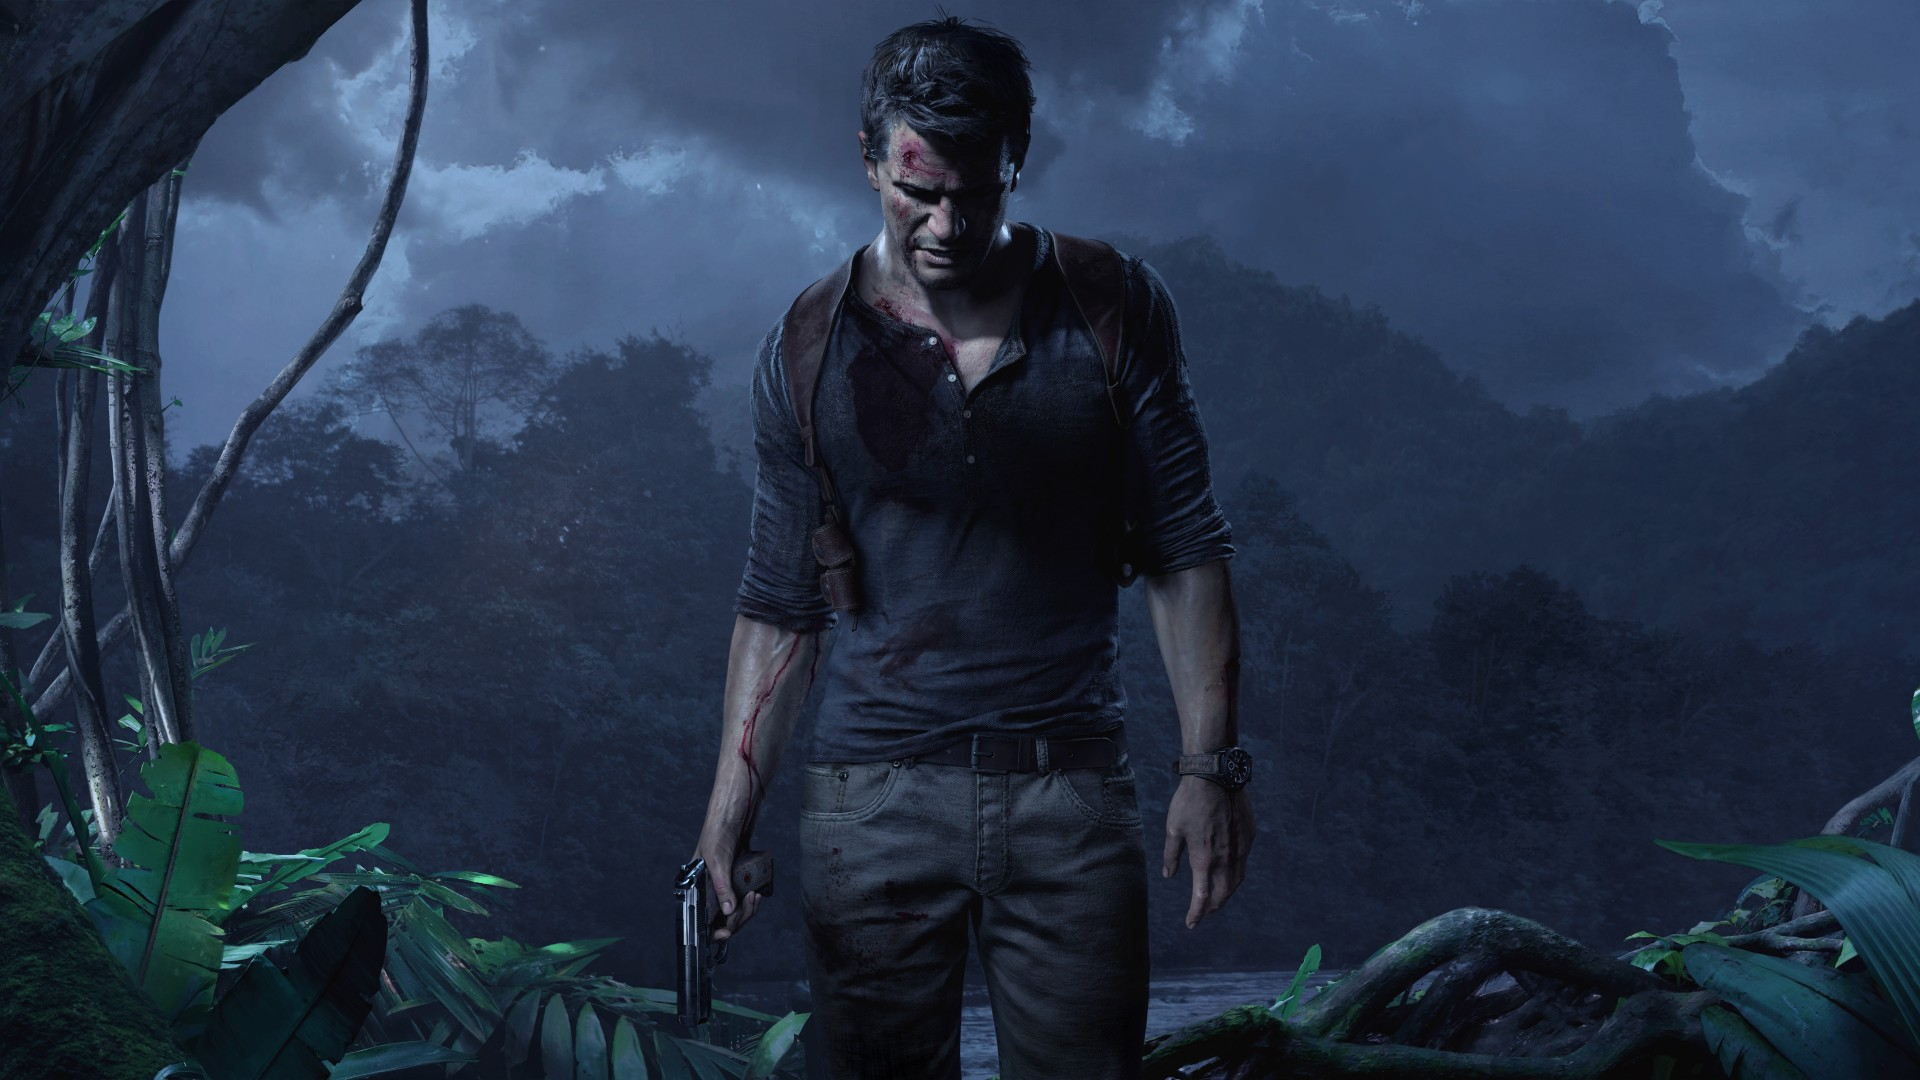 Uncharted 4 A Thief's End, Best Games of 2015, E3 2015, gameplay, review, screenshot, PS4, Nathan Drake (horizontal)